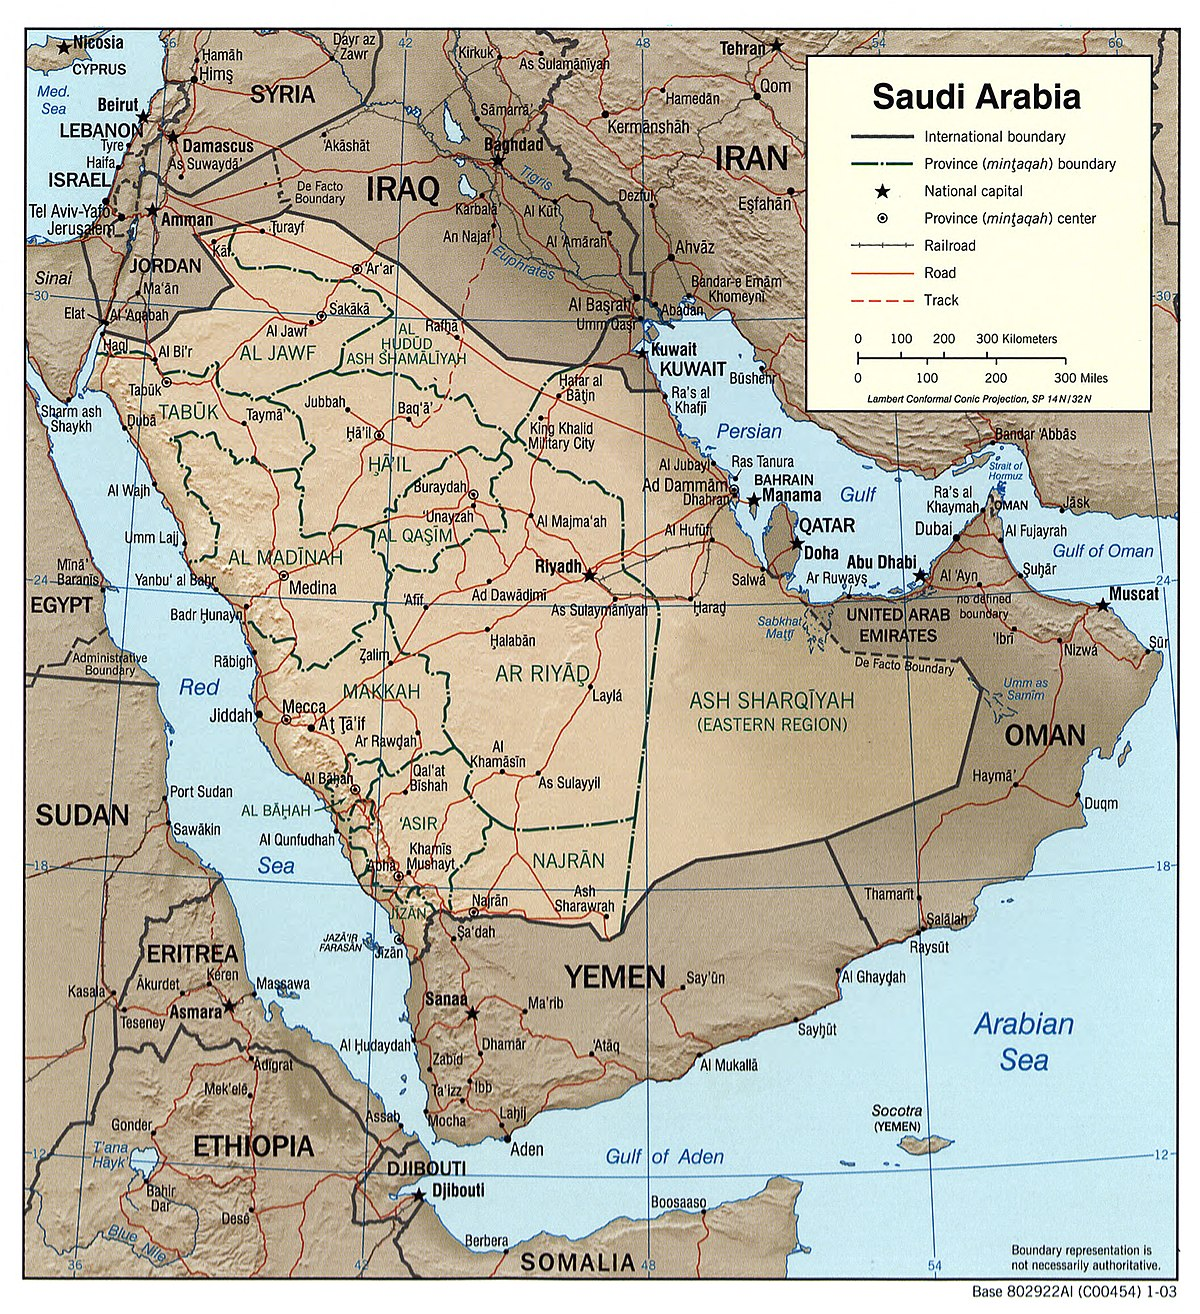 geography of saudi arabia wikipedia. Black Bedroom Furniture Sets. Home Design Ideas